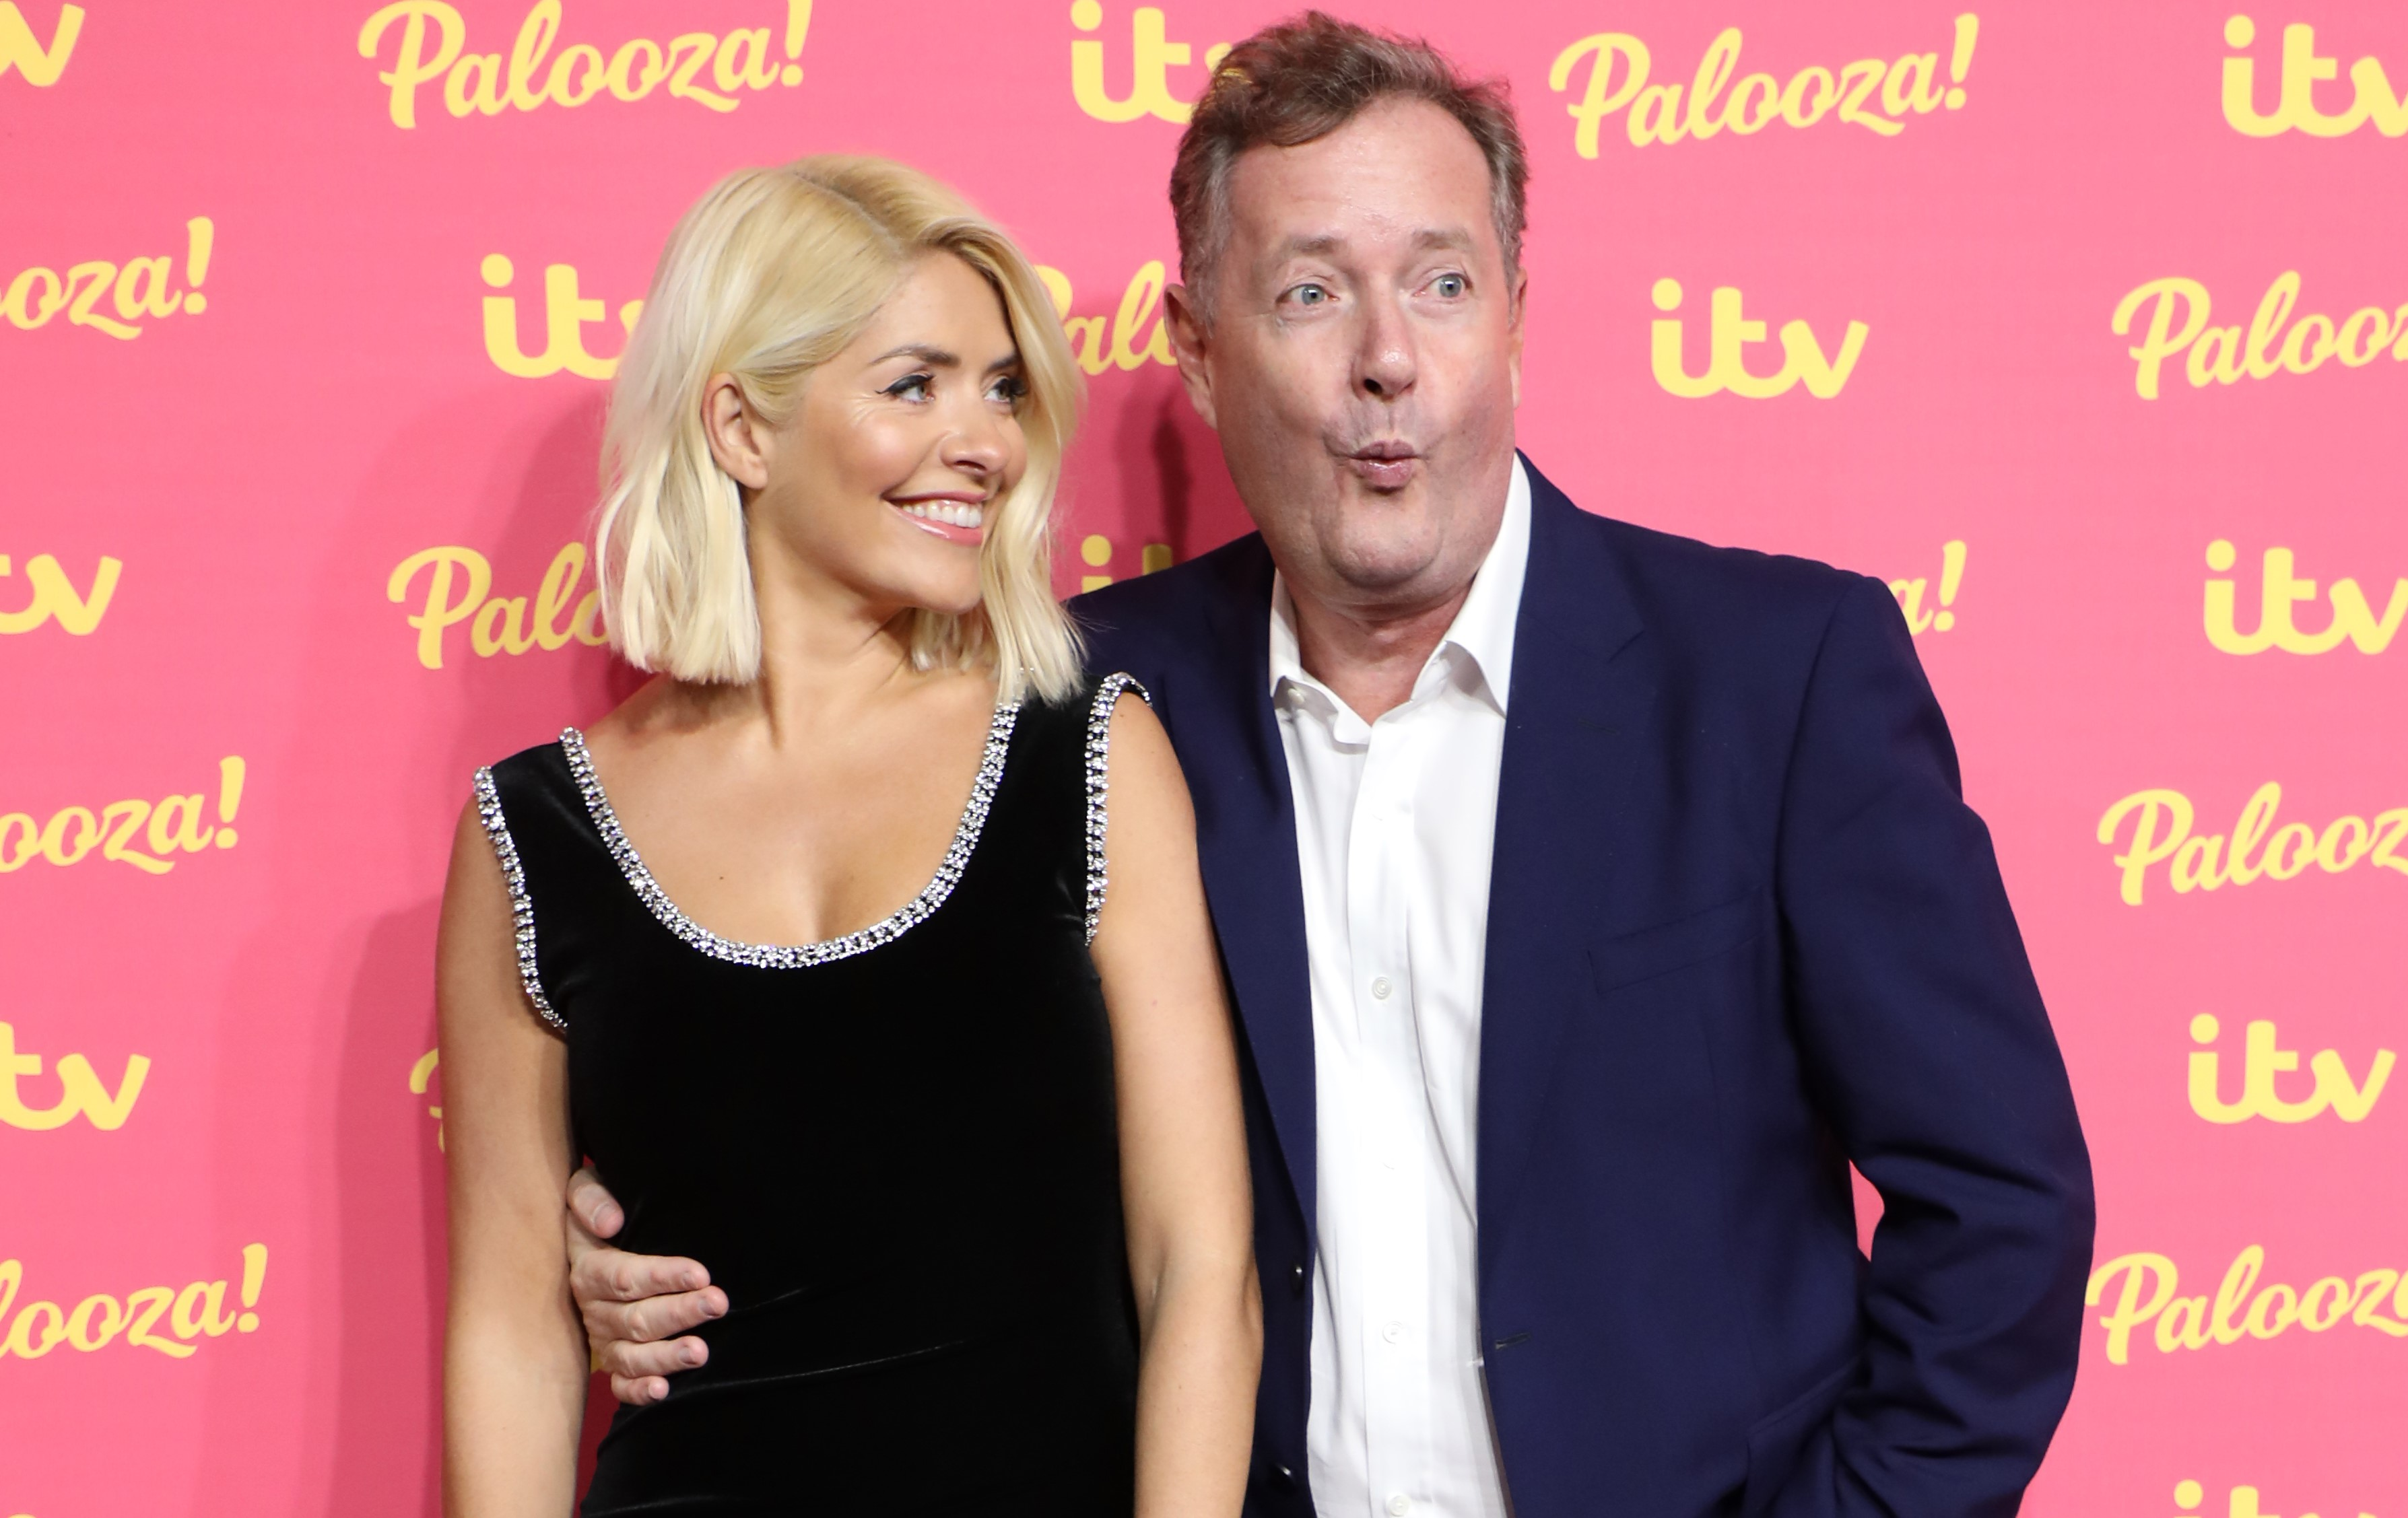 Piers Morgan is sick of losing to Holly Willoughby at the NTAs (Credit: Getty Images)